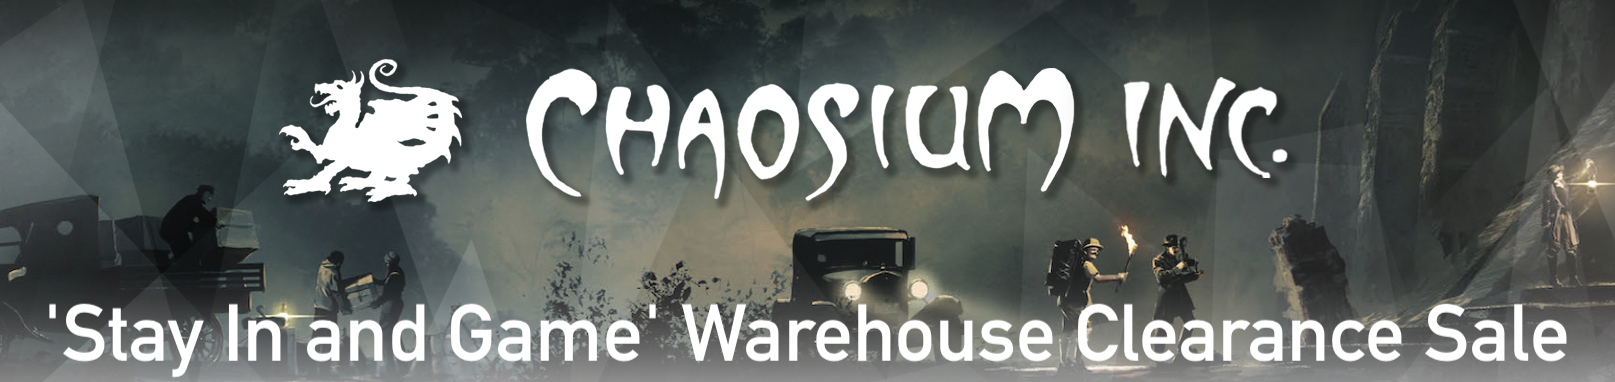 stay-in-and-game-warehouse-clearance-sale.png